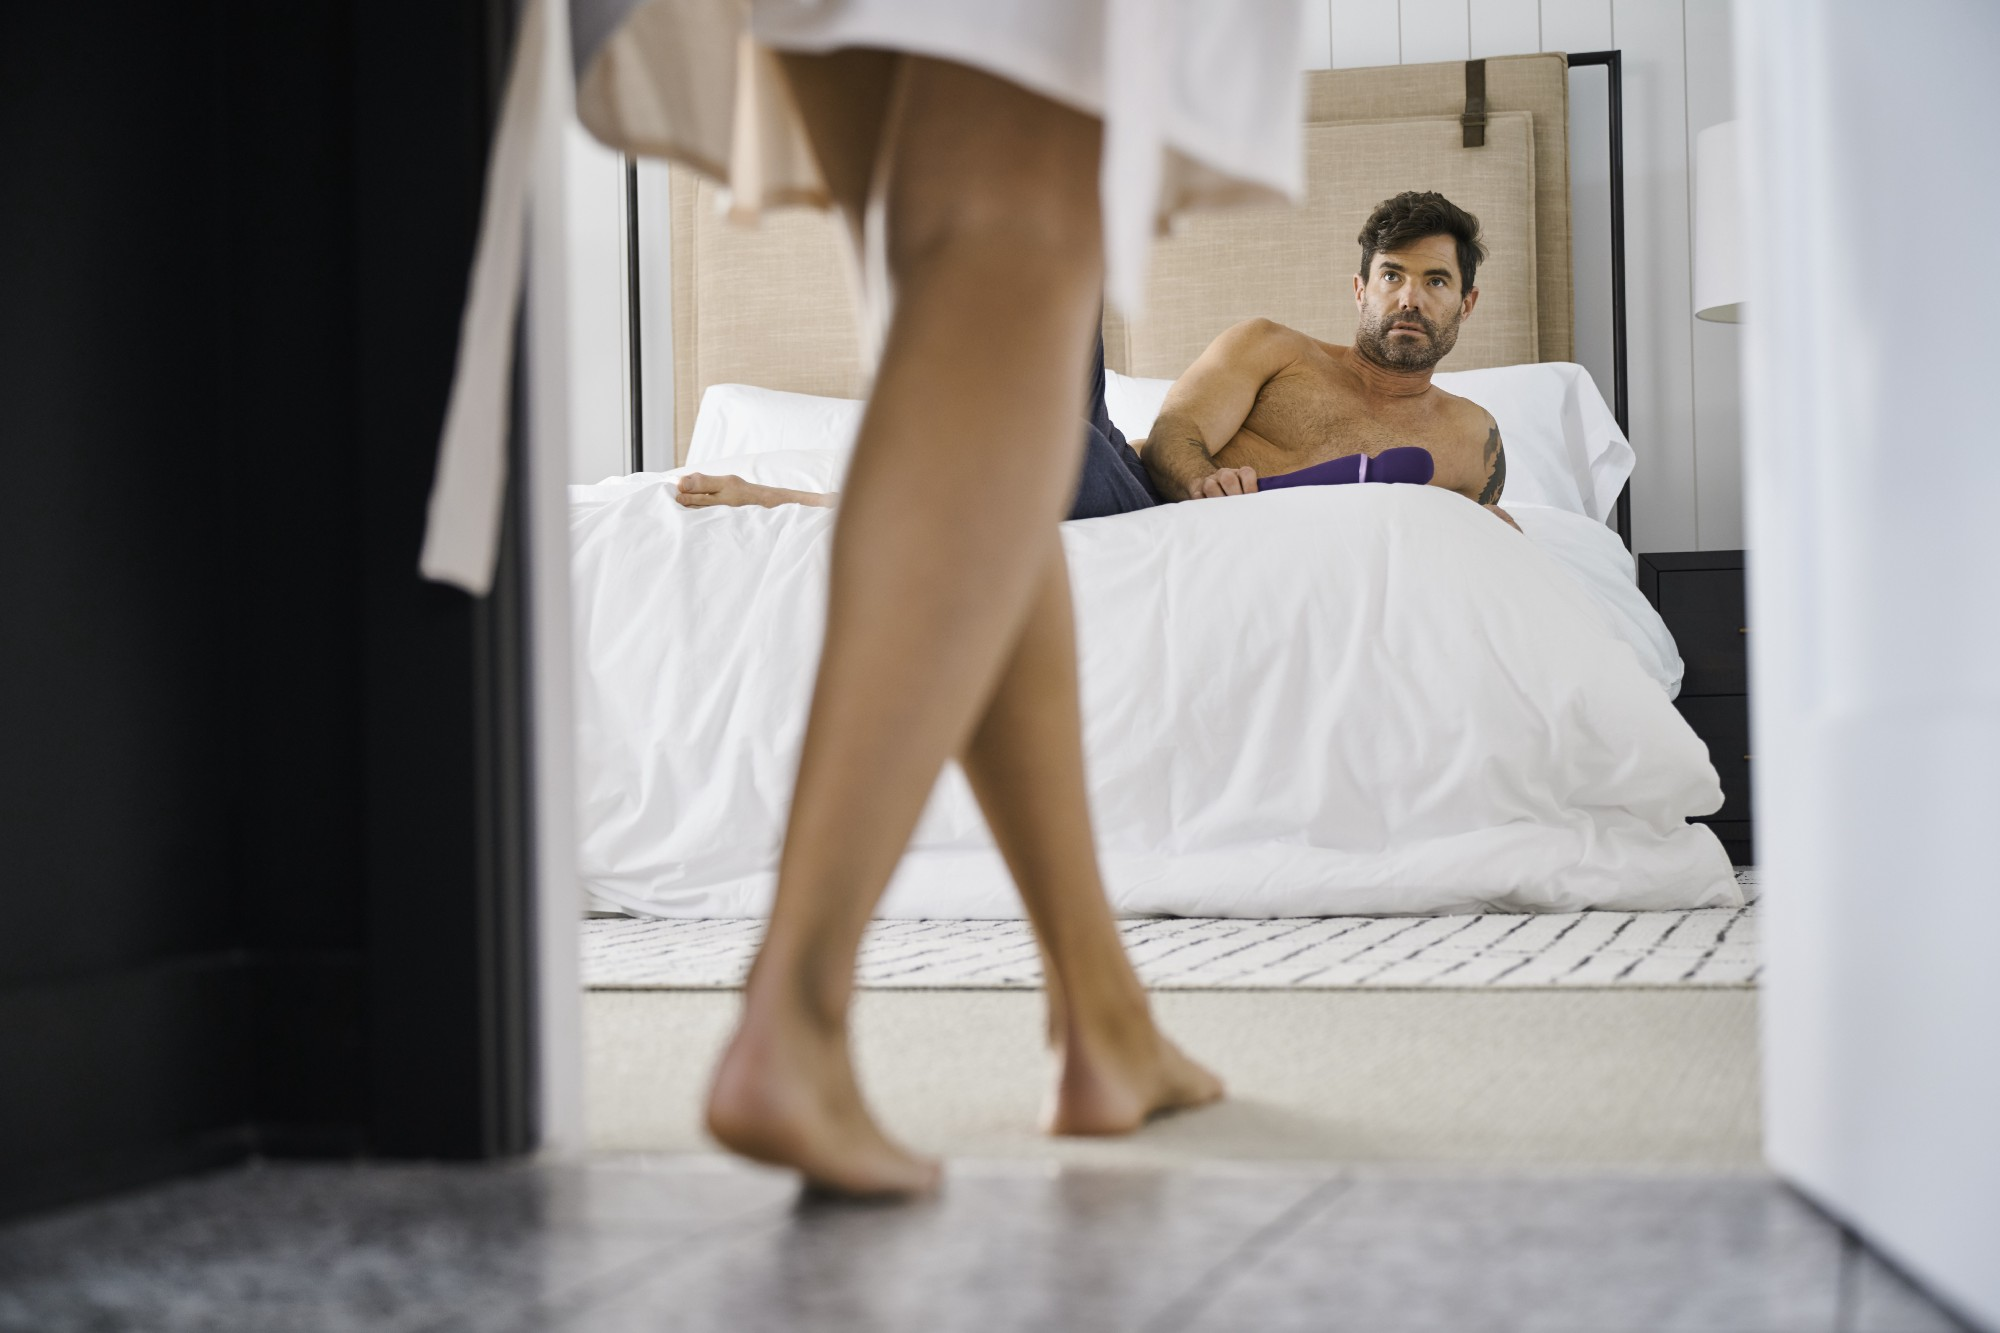 A shot through a hotel room door. We see a woman's legs as she enters wearing a white robe. Through the door we see a man waiting, topless on the bed.